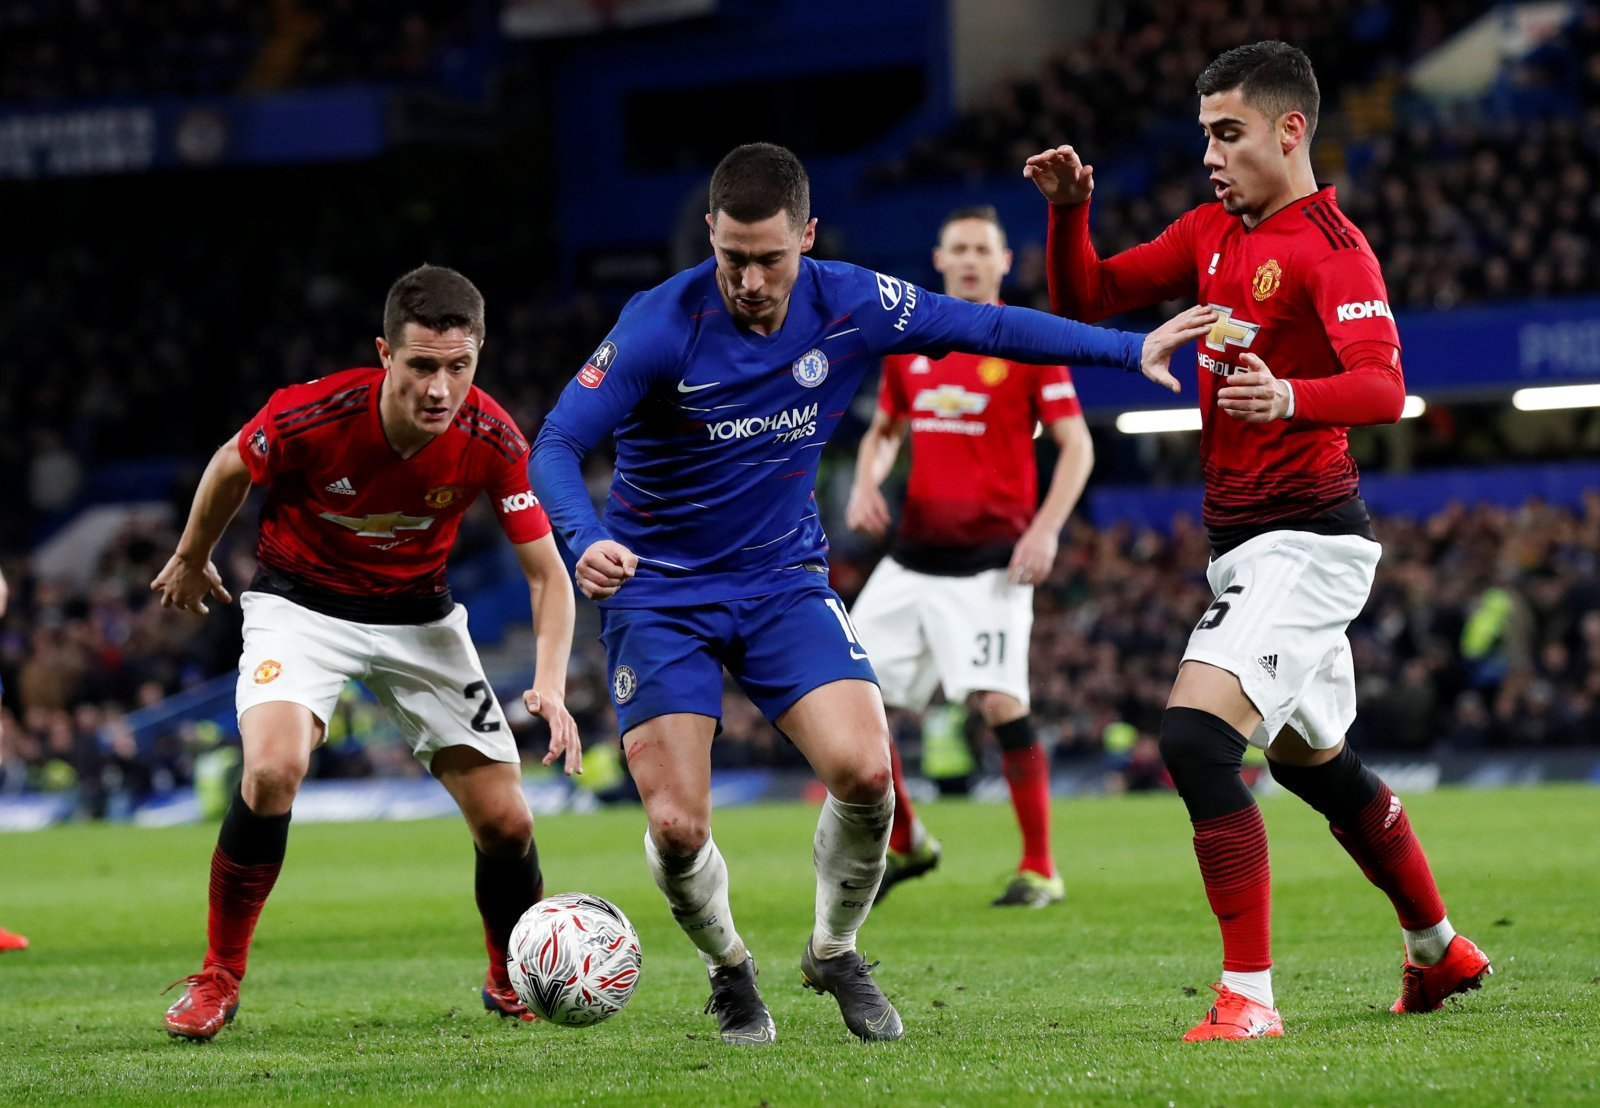 Unsung heroes: Eden Hazard the only Chelsea player worth his salt